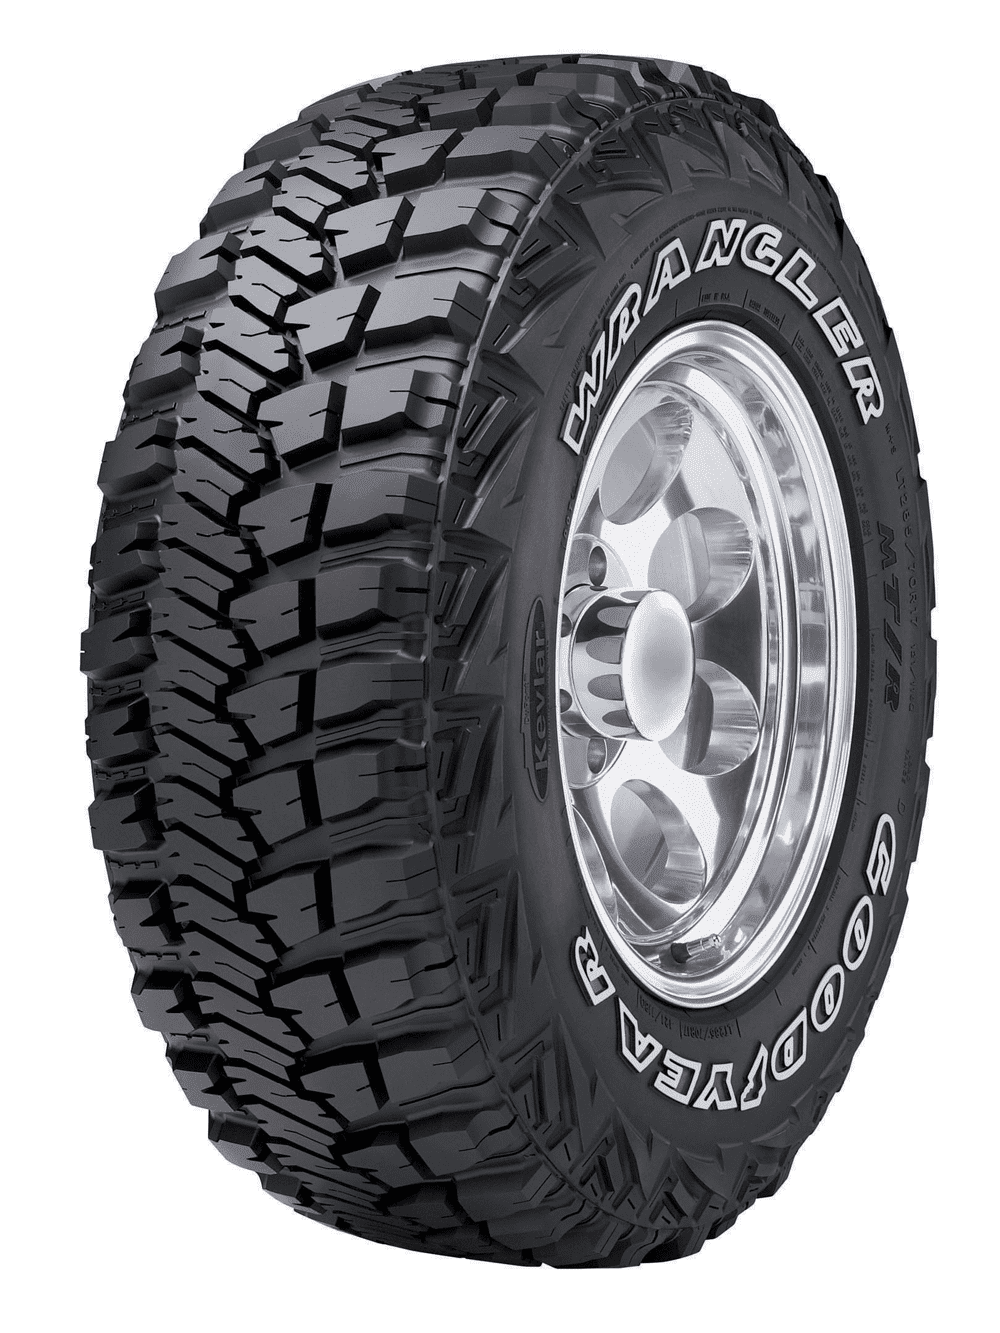 Goodyear/Wrangler M/T R Tire with KEVLAR